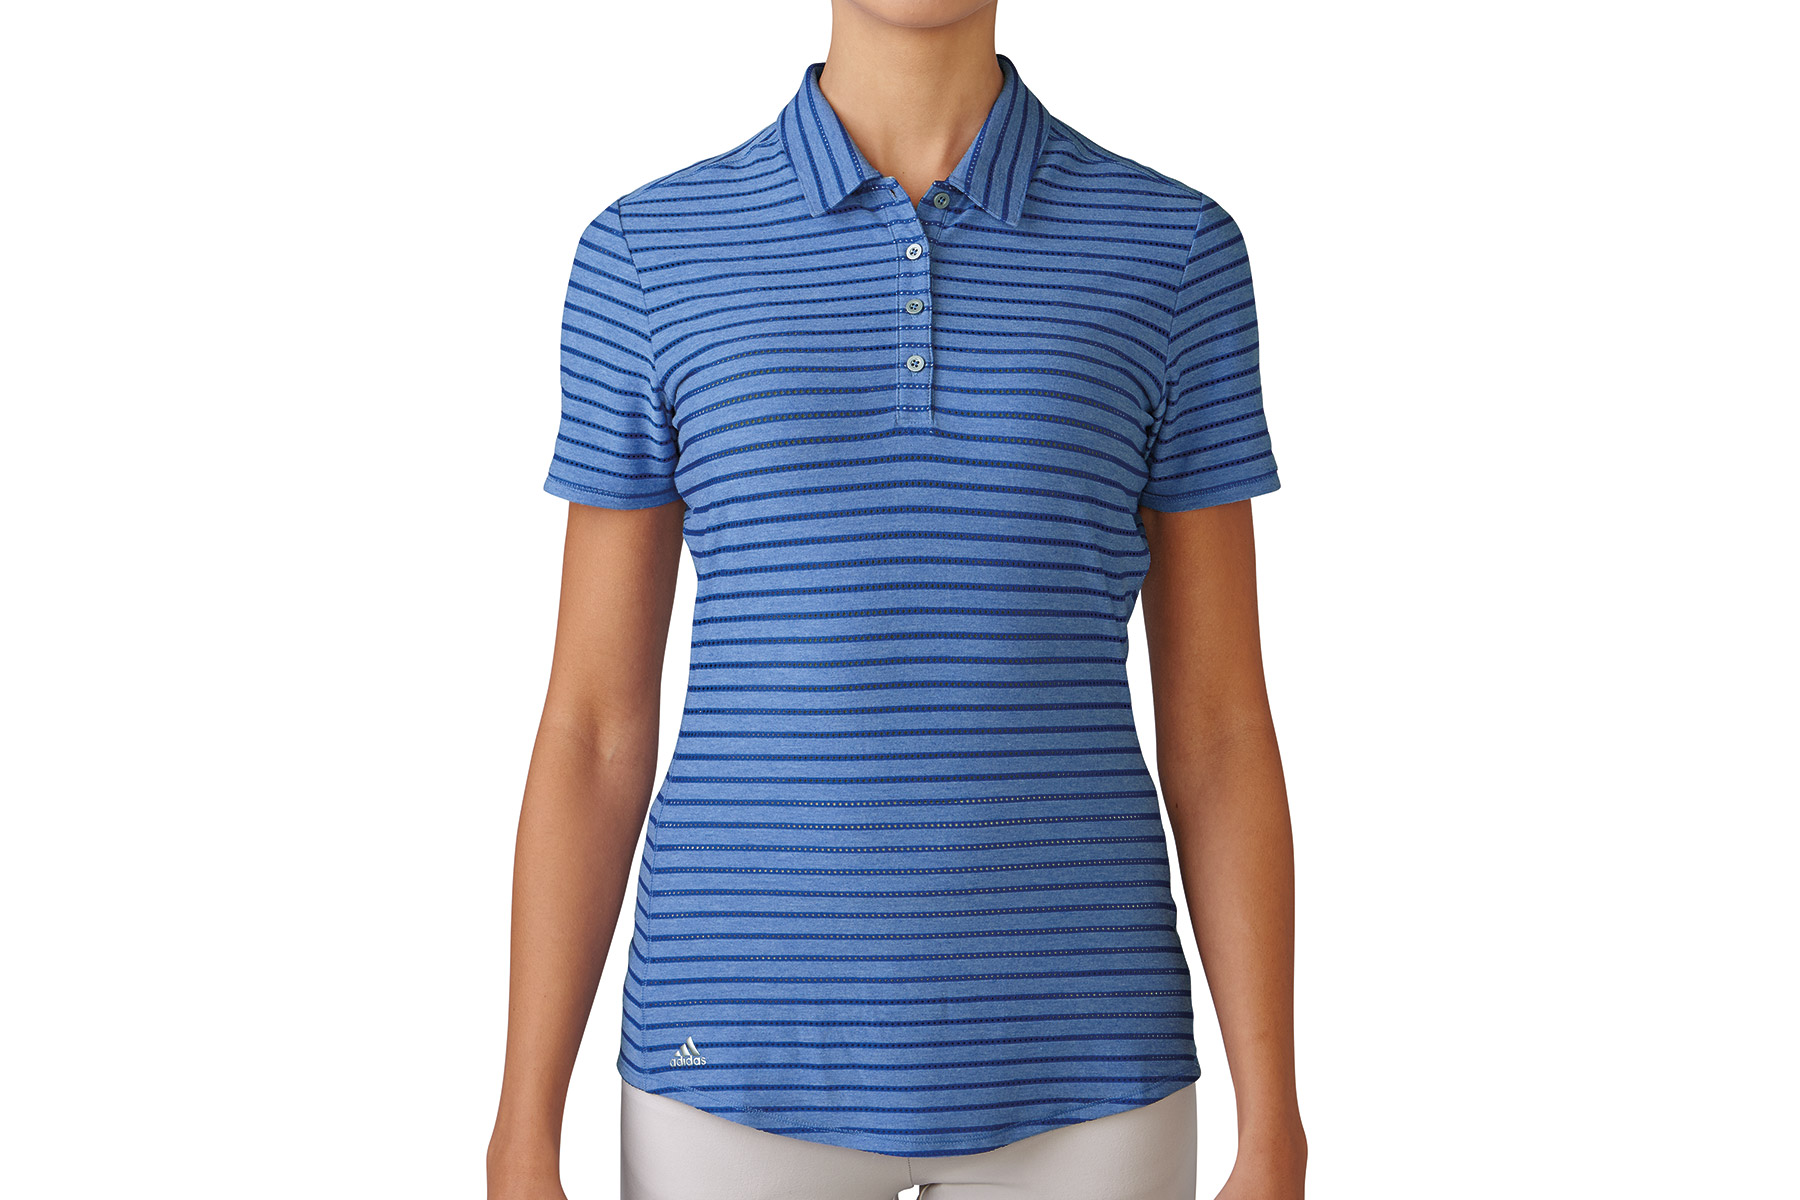 Adidas Golf Cotton Stripe Ladies Polo Shirt From American Golf